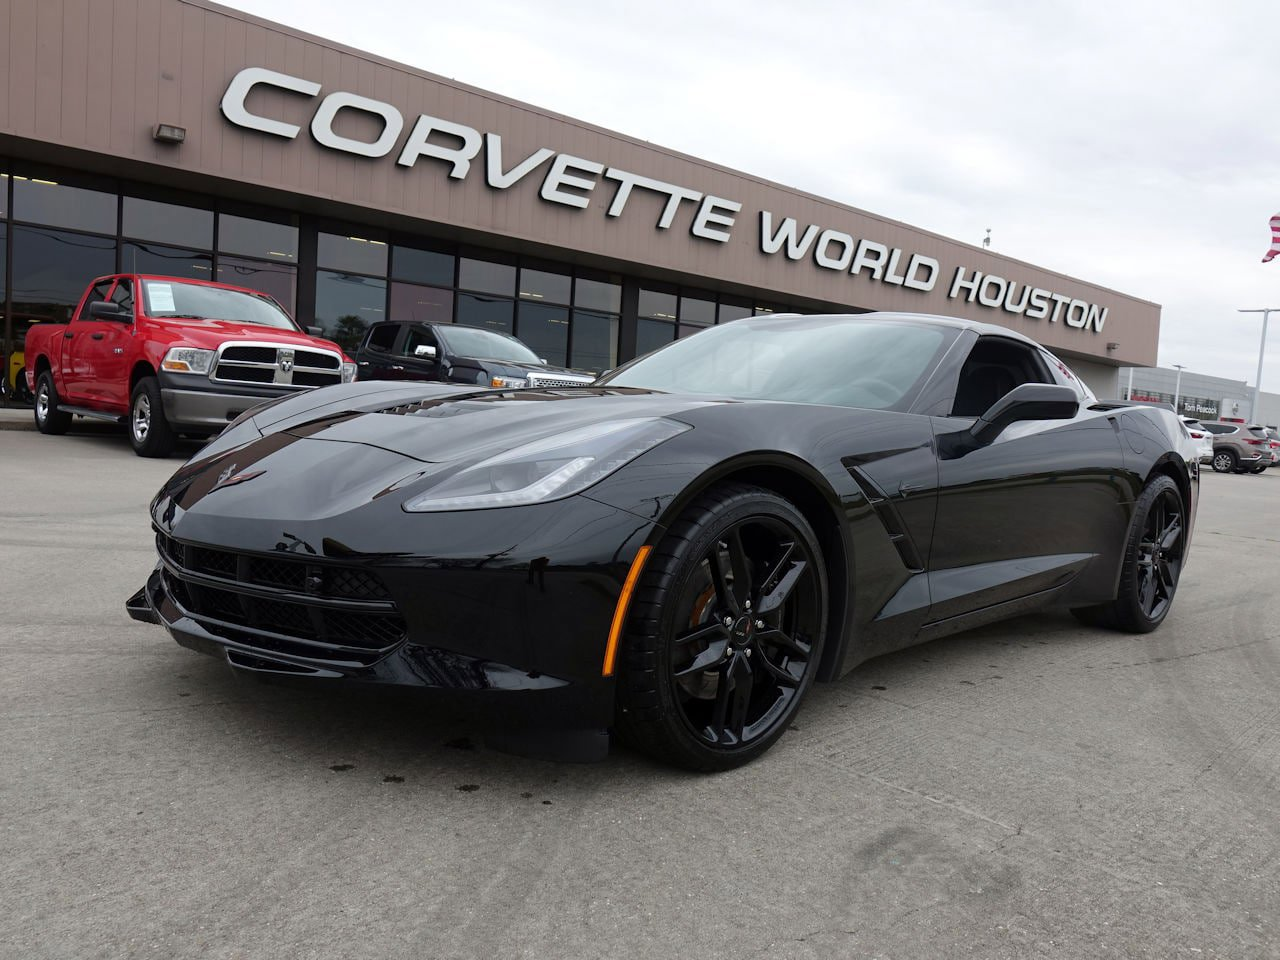 2016 Chevrolet Corvette Stingray Coupe image